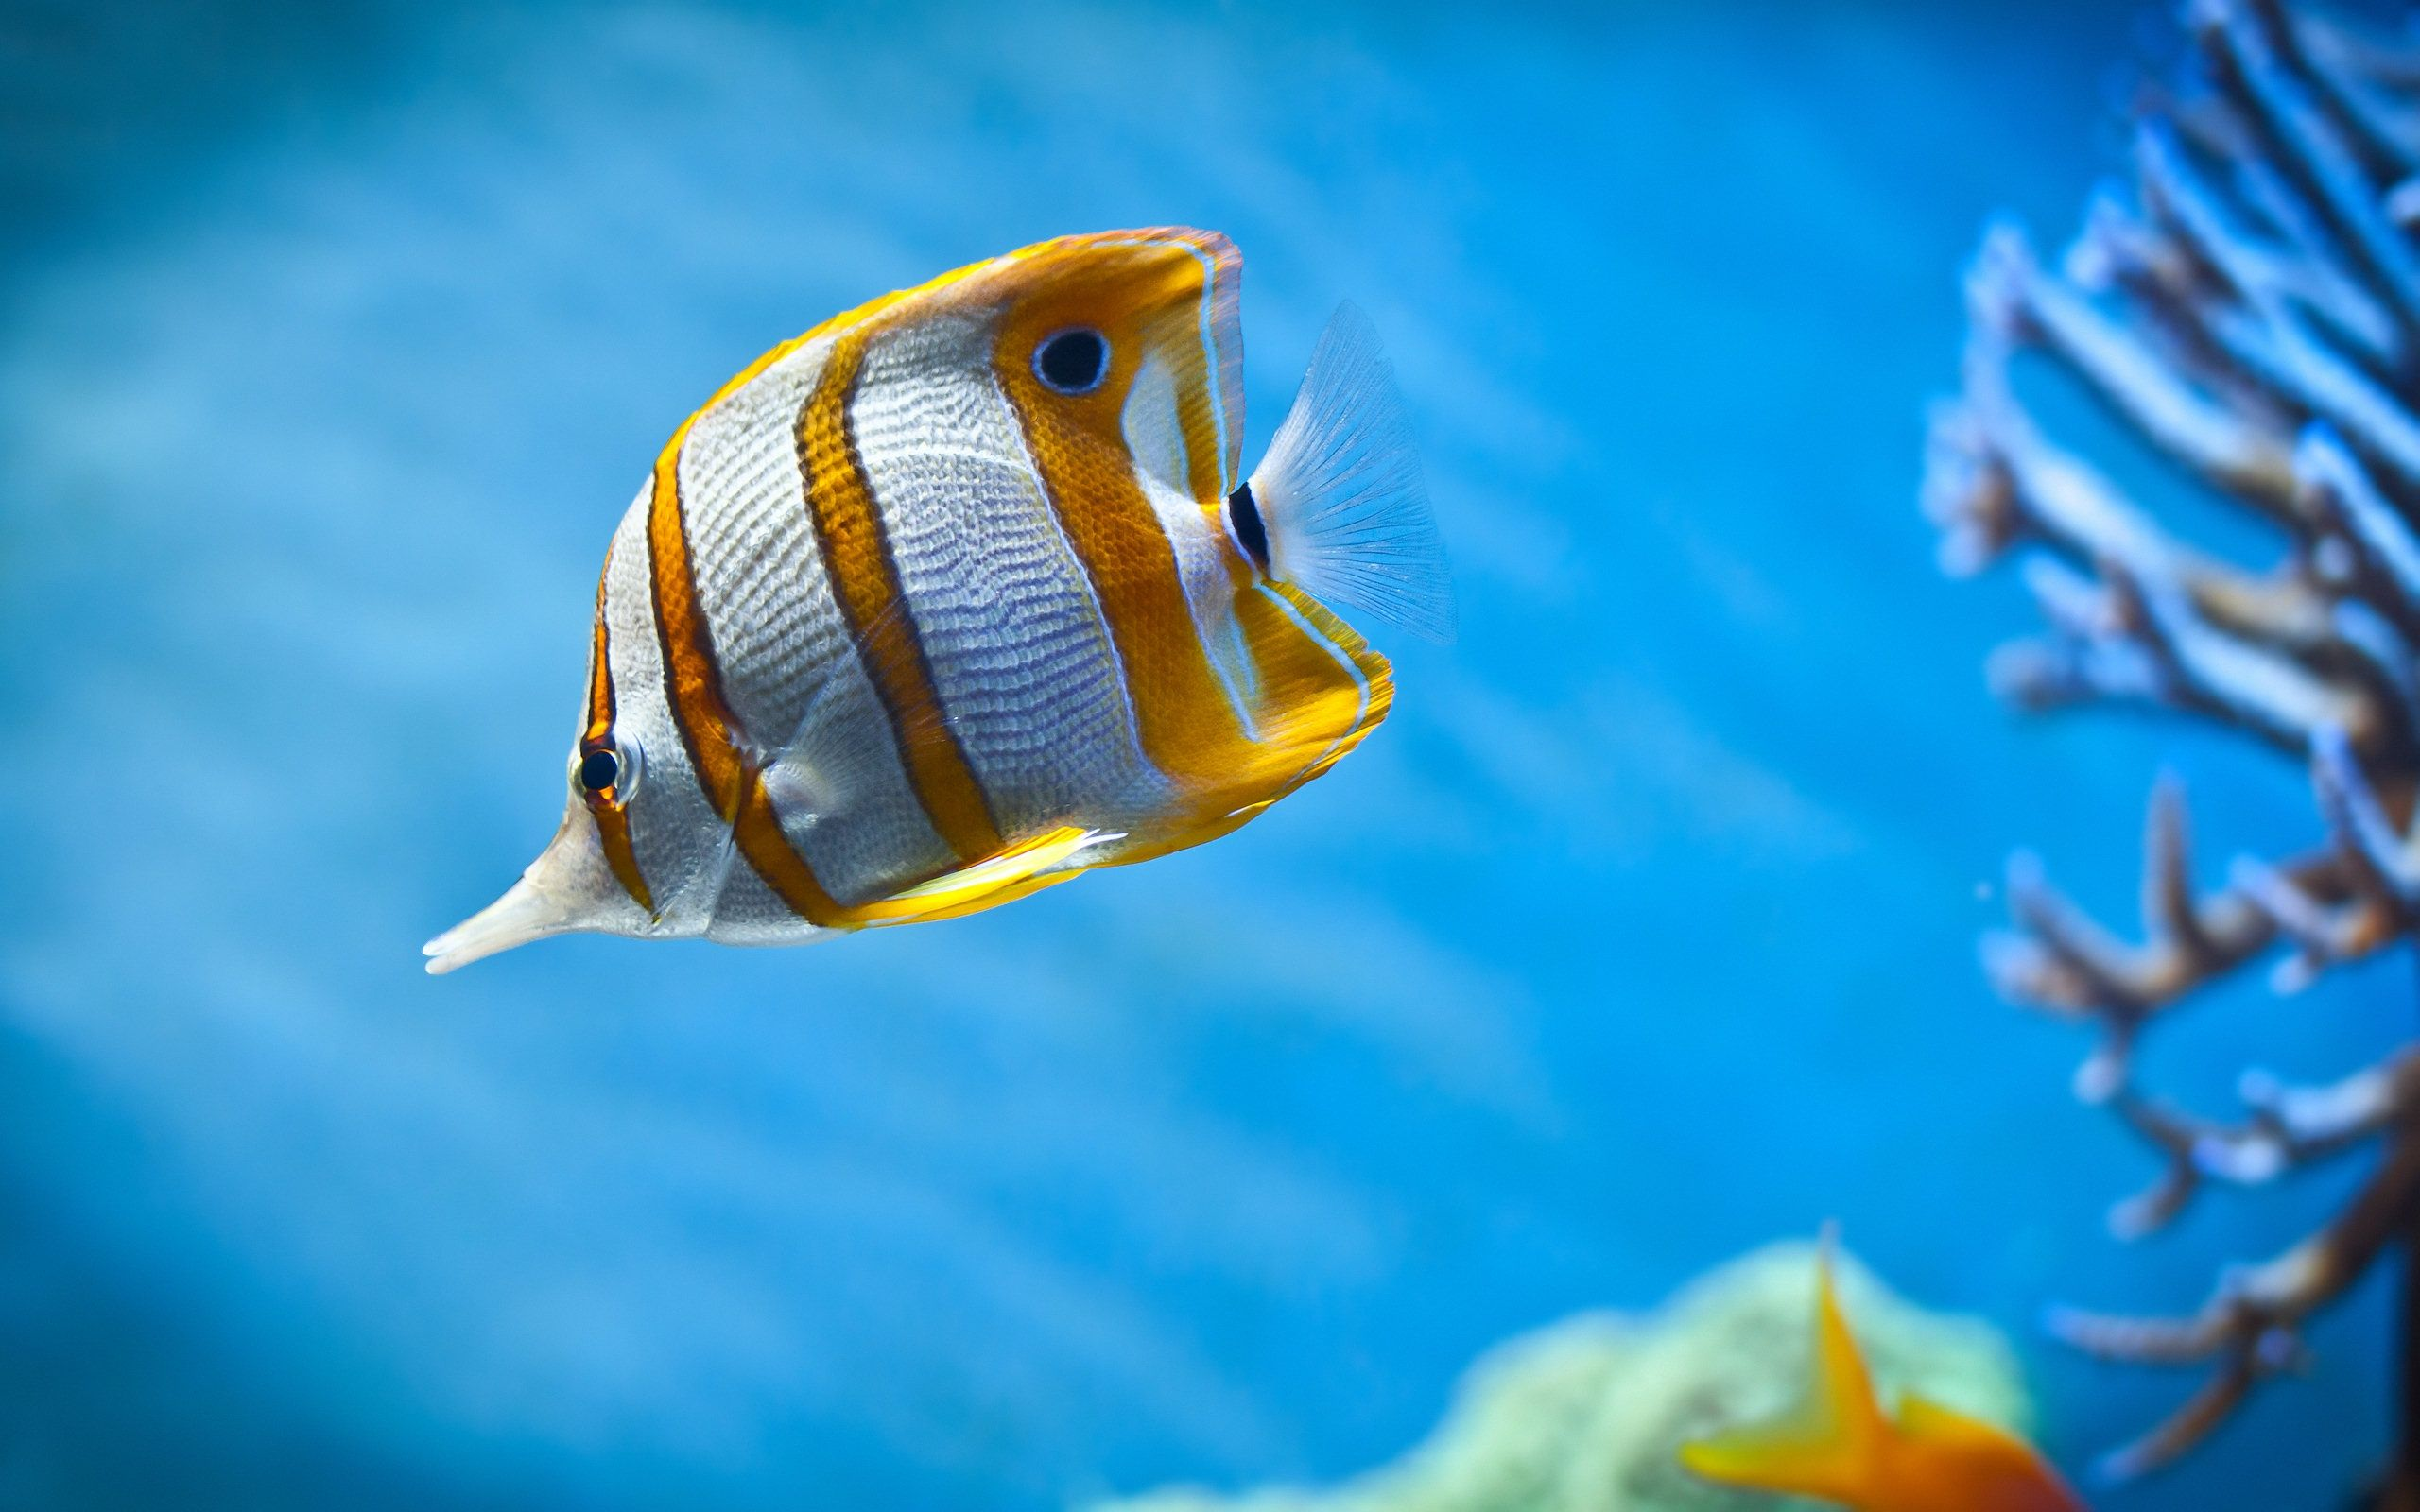 Fish Wallpapers Find best latest Fish Wallpapers in HD